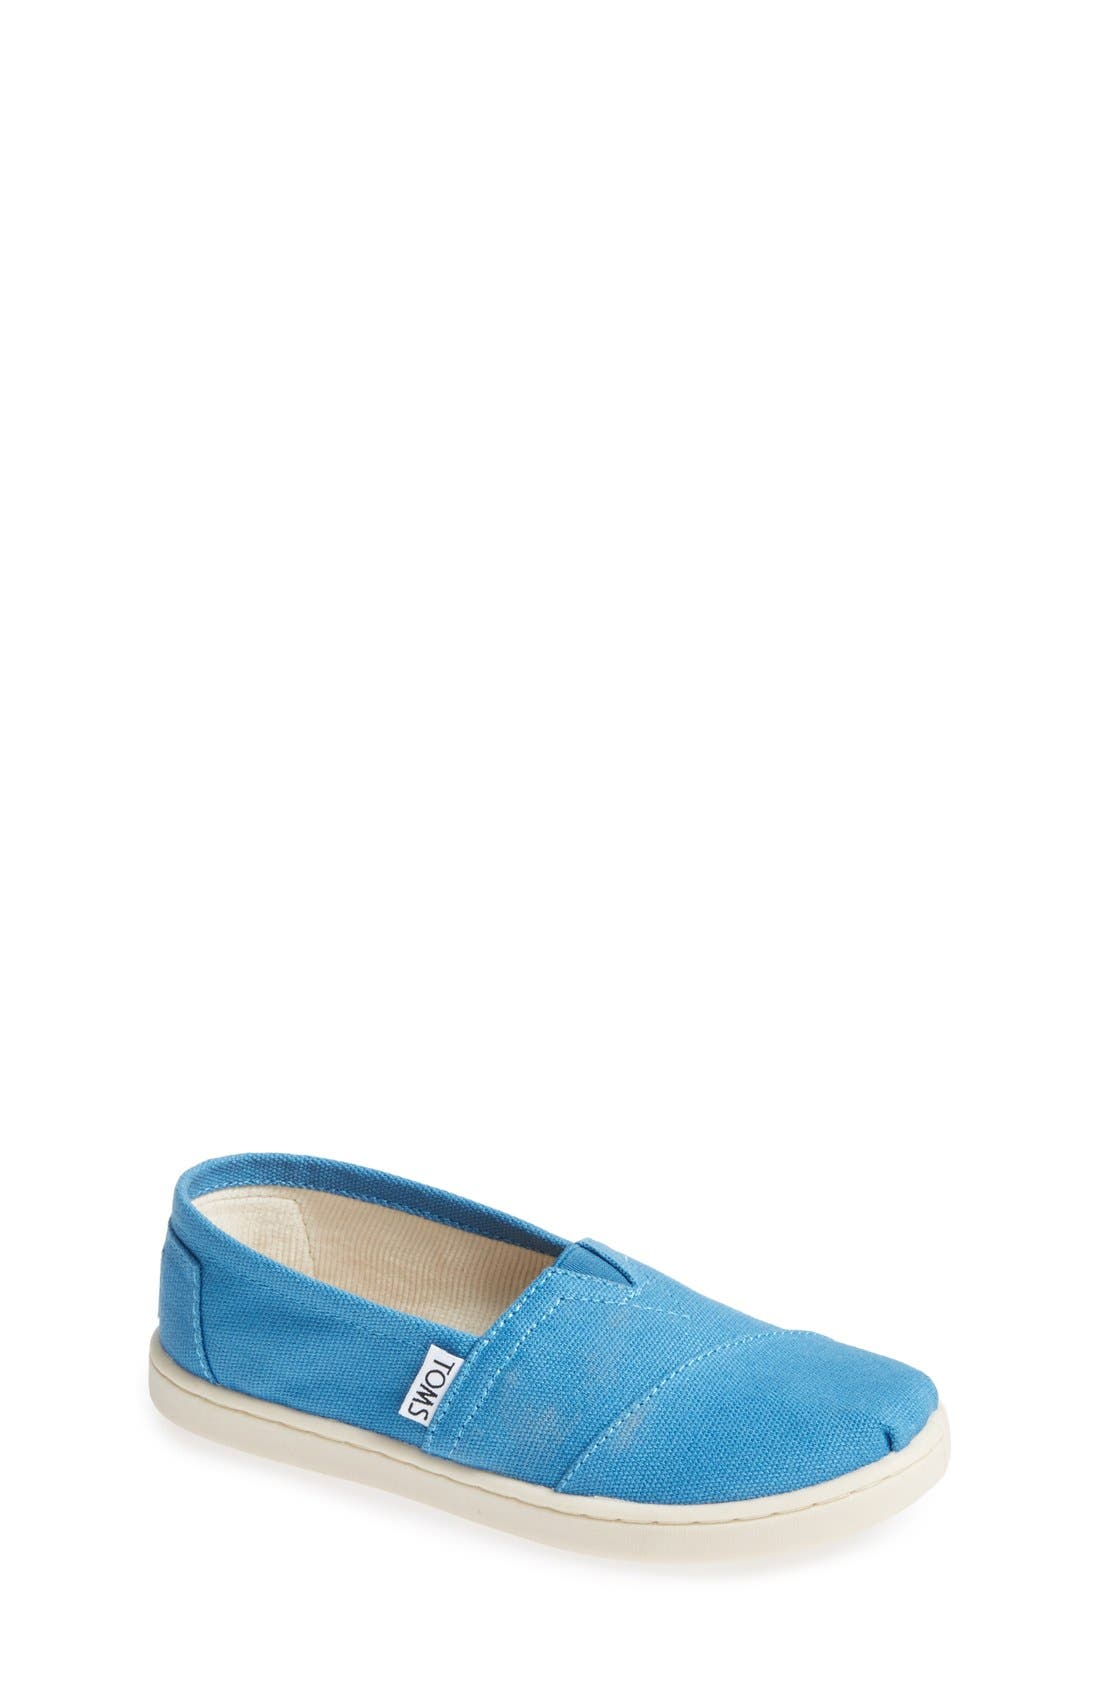 'Classic - Youth' Canvas Slip-On,                             Main thumbnail 1, color,                             420